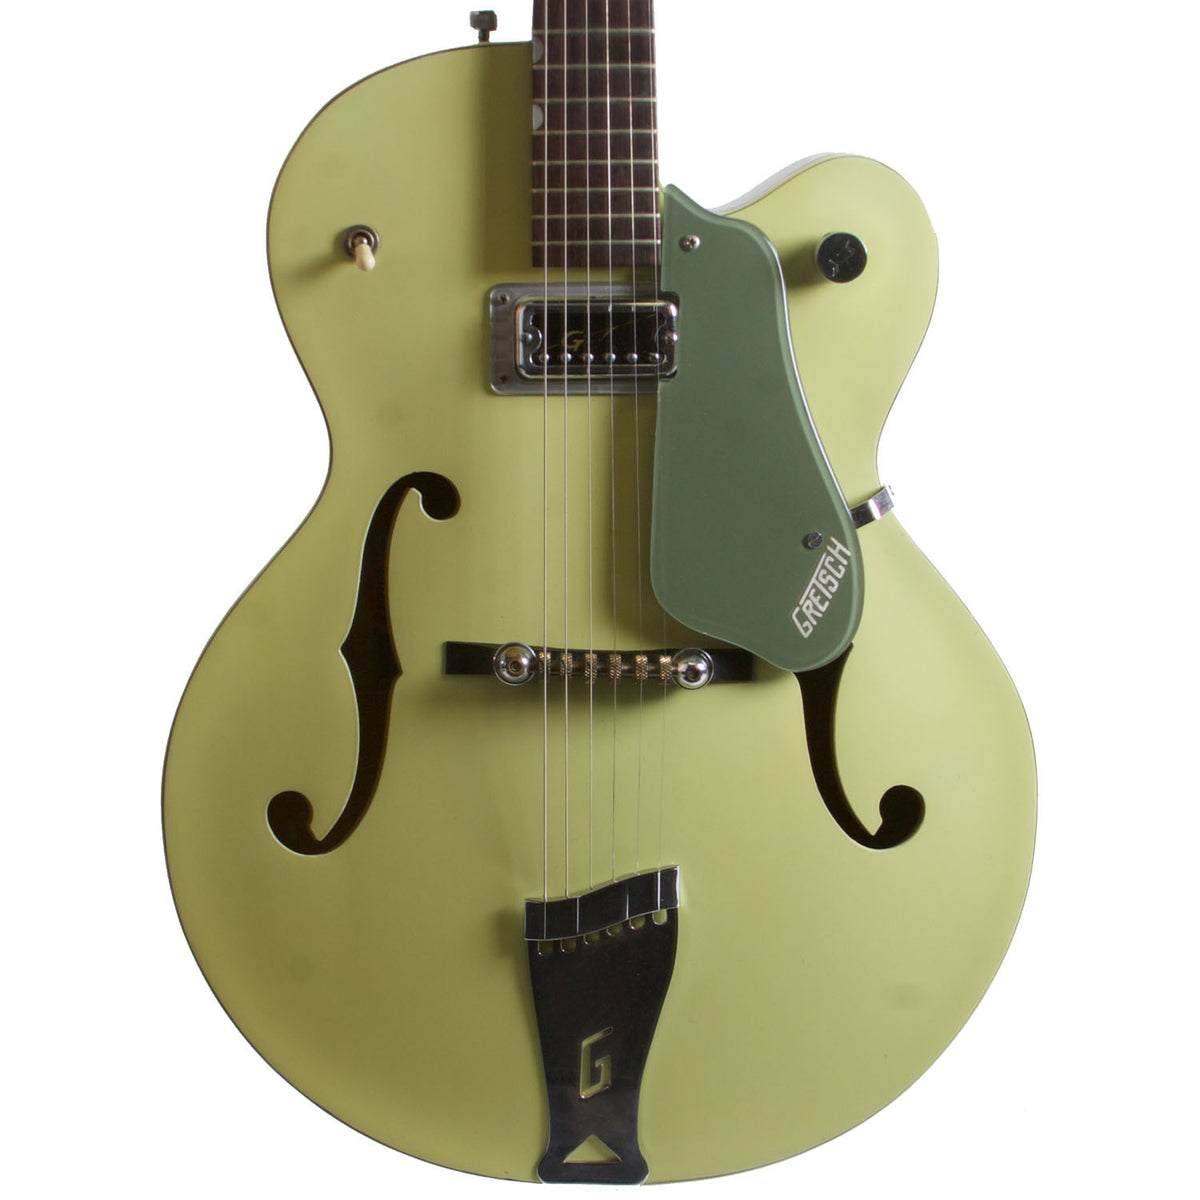 1960 Gretsch 6125 Single Anniversary - Garrett Park Guitars  - 2